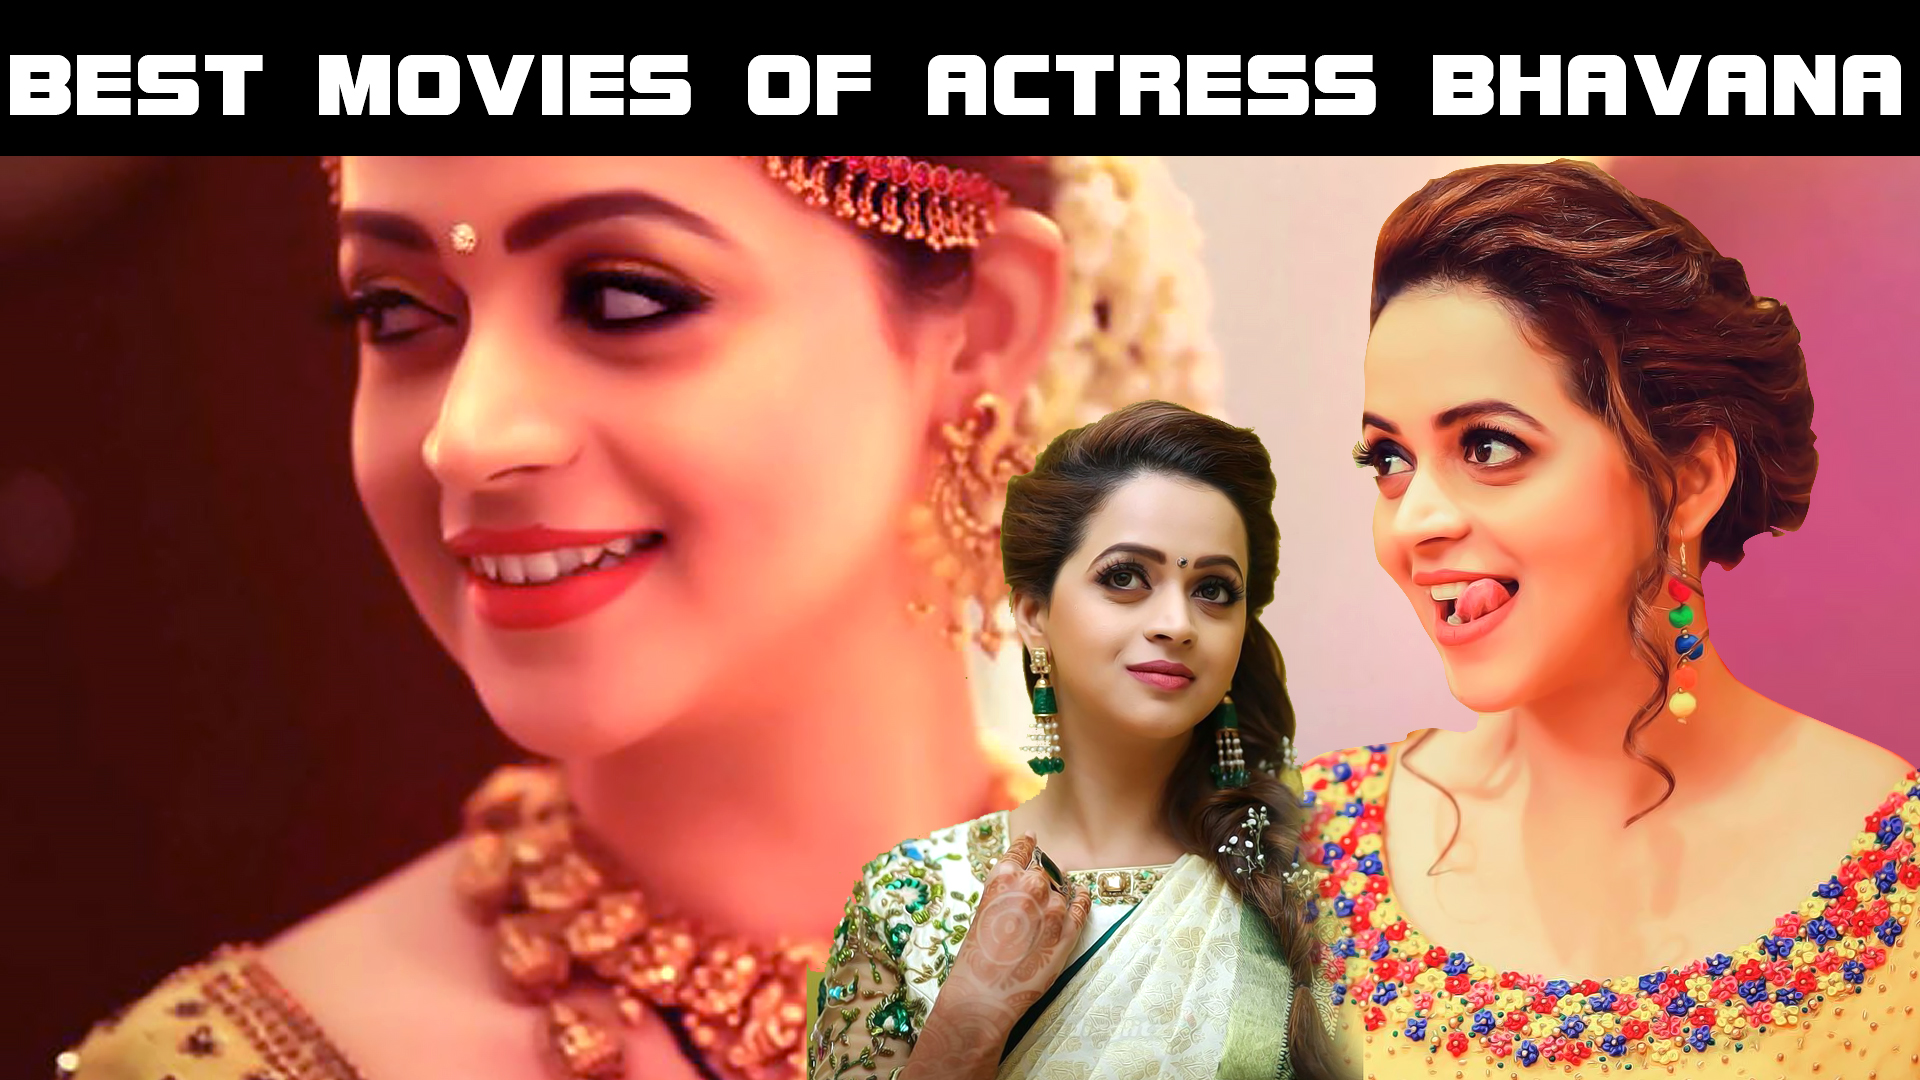 Top 10 Best Movies Of Actress Bhavana In Malayalam Cinema Malayalam Article